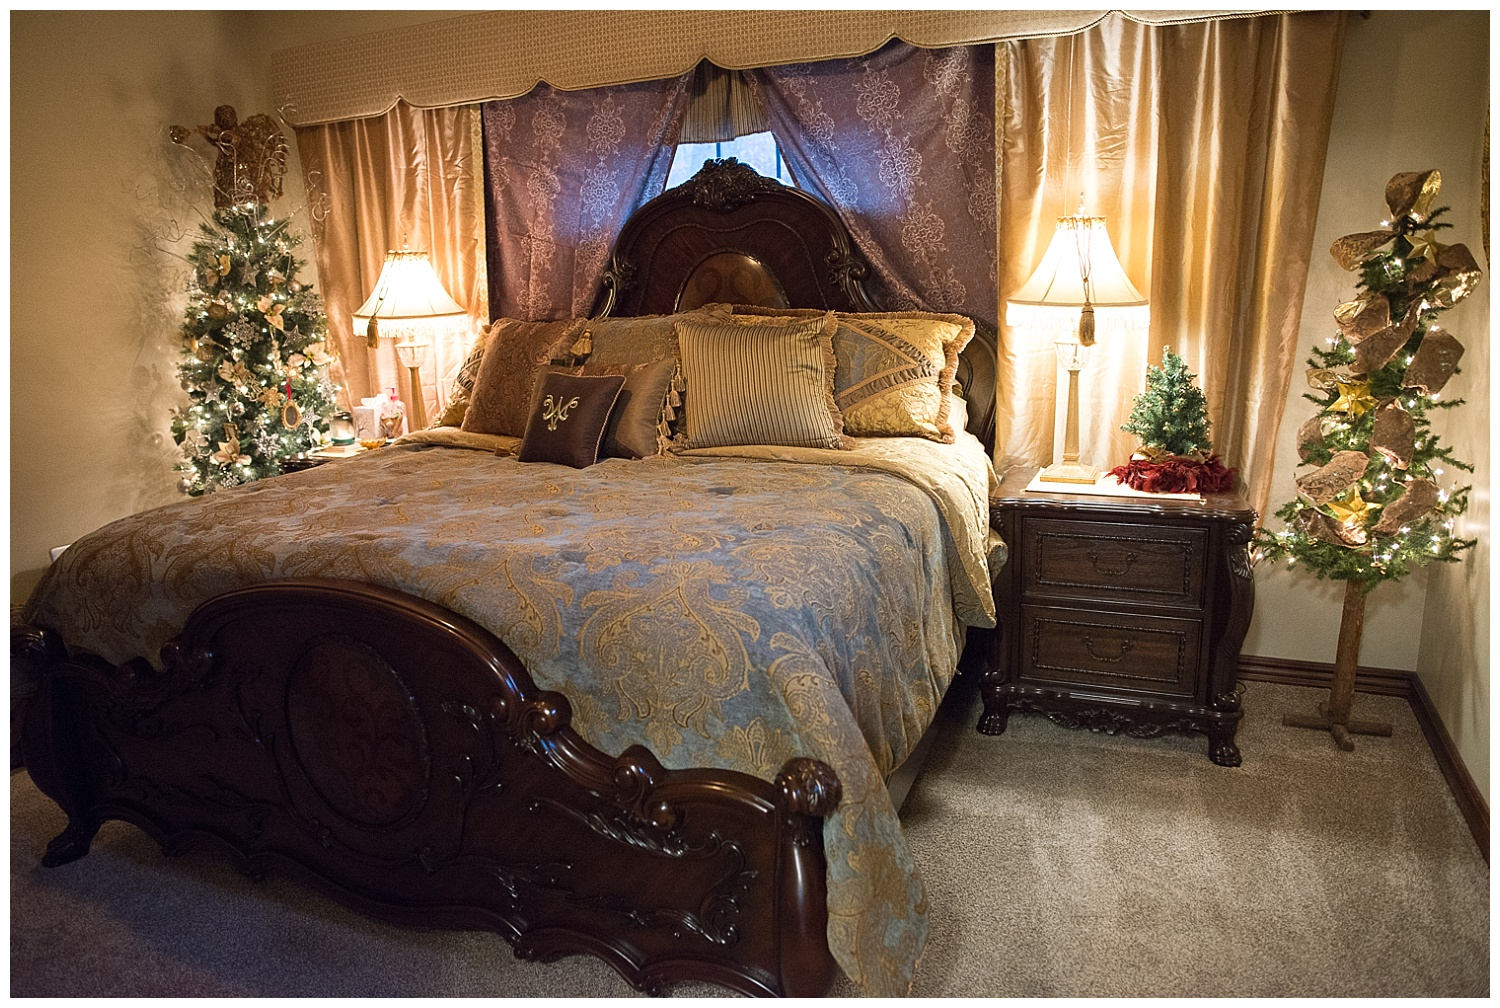 How cute are these His and Hers trees in the master bedroom?